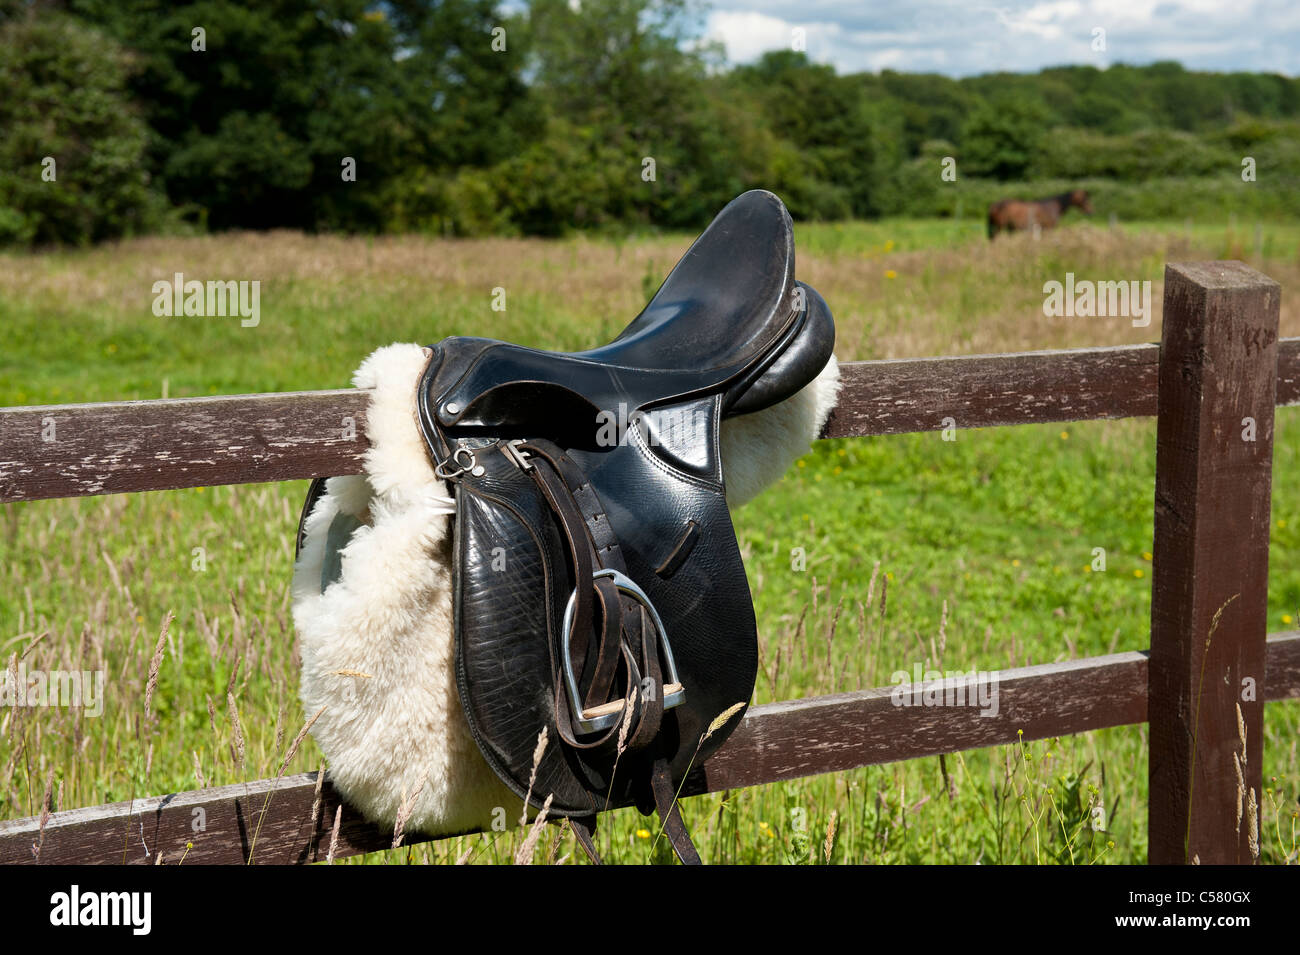 Saddle on post and rail fence ready to tack up horse UK equestrian - Stock Image